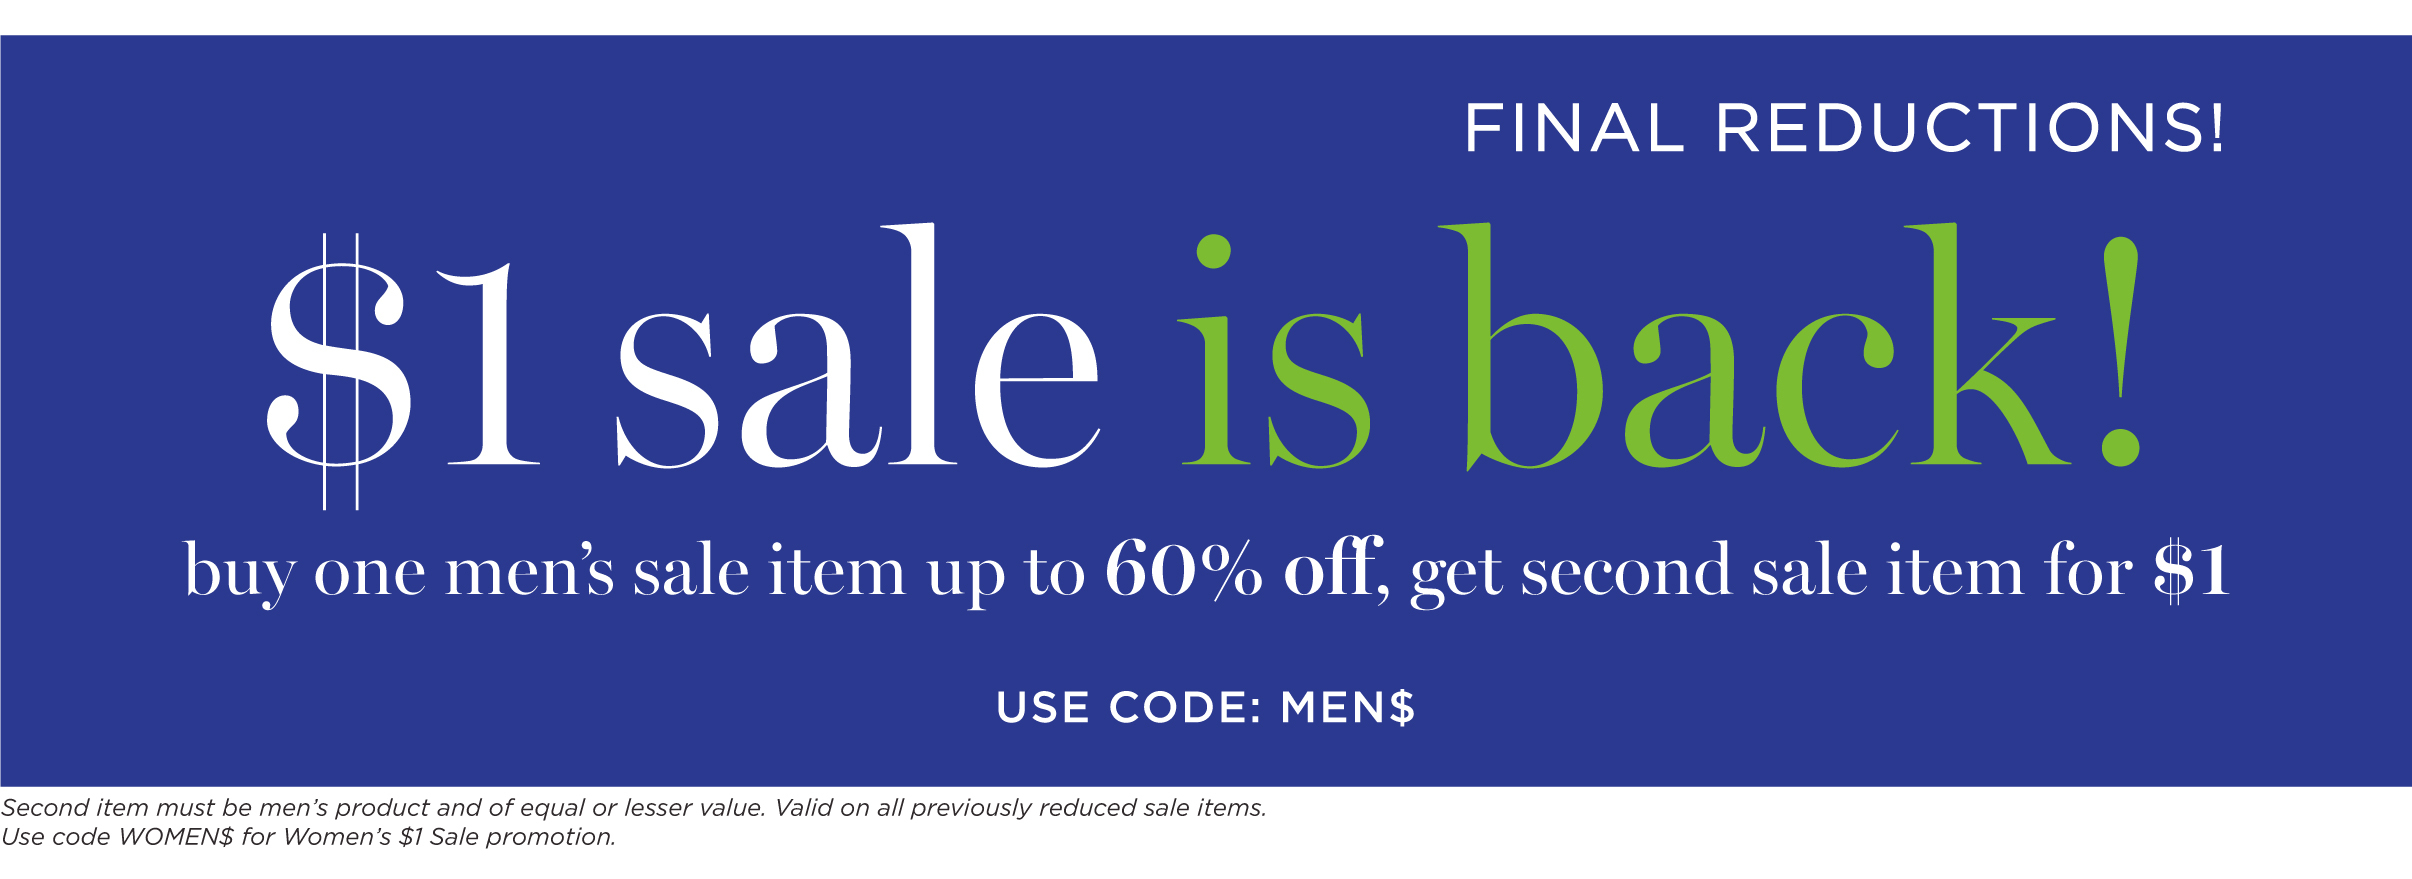 $1 sale is back